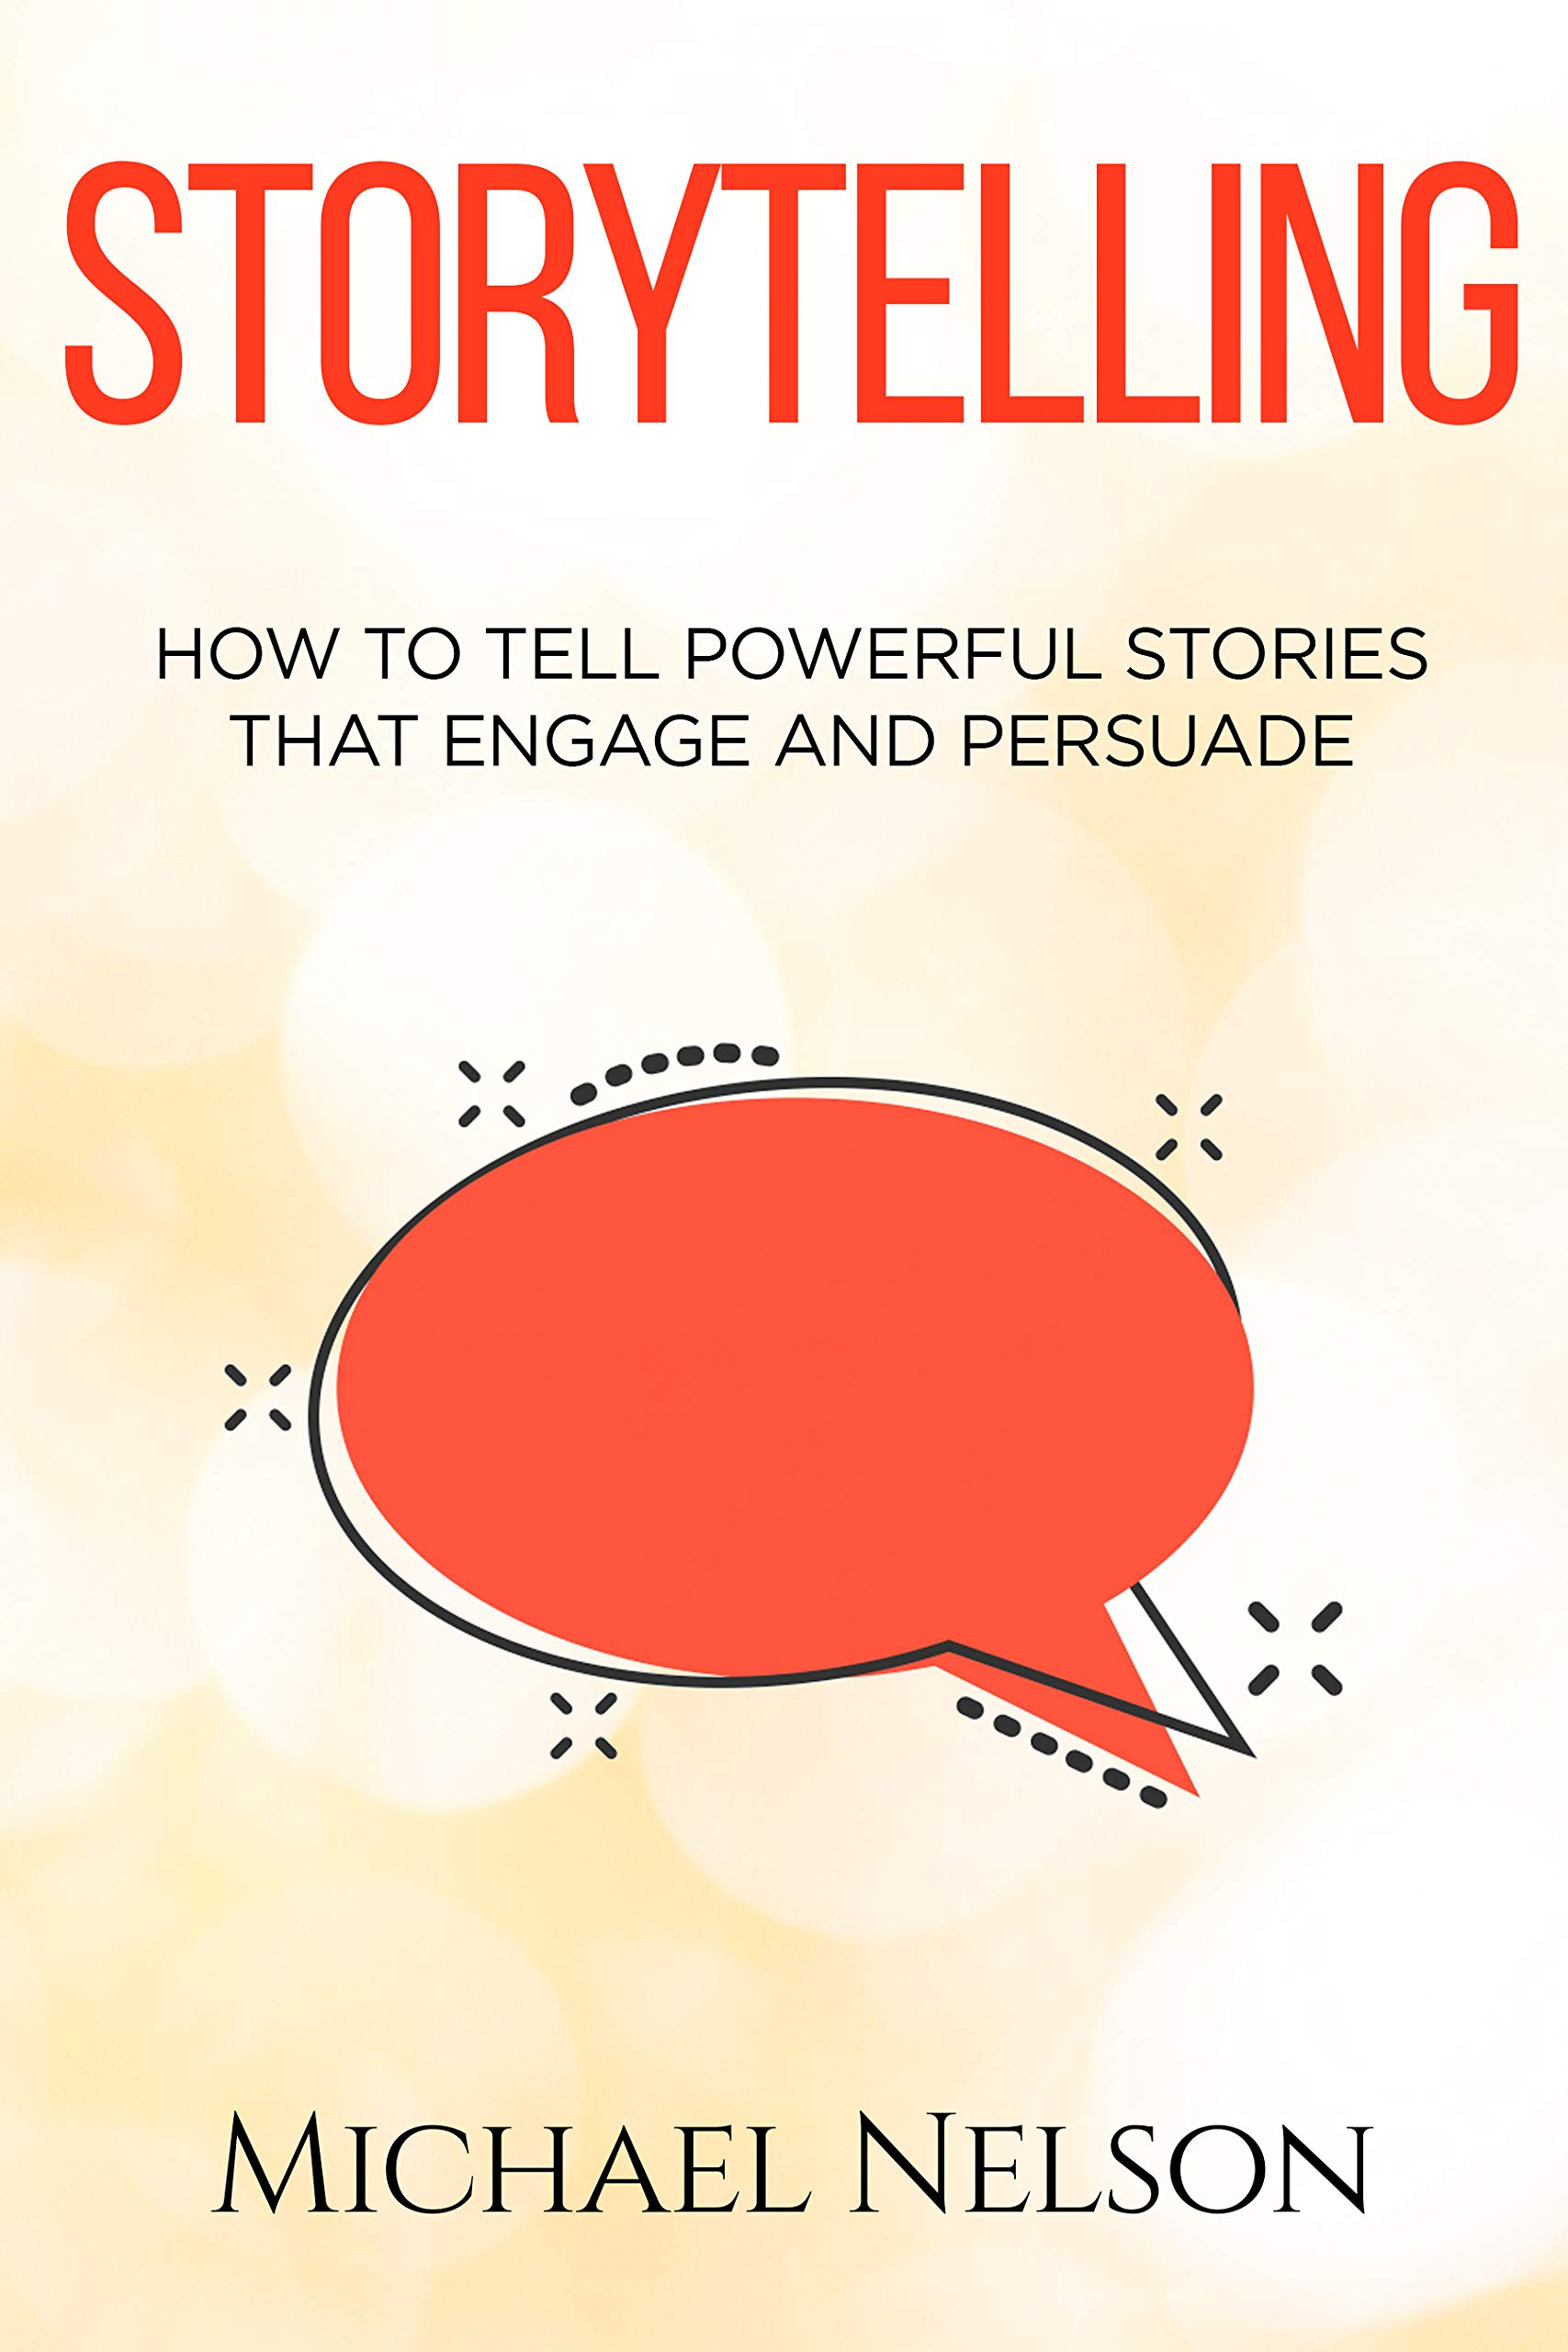 Storytelling: How to tell powerful stories that engage and persuade